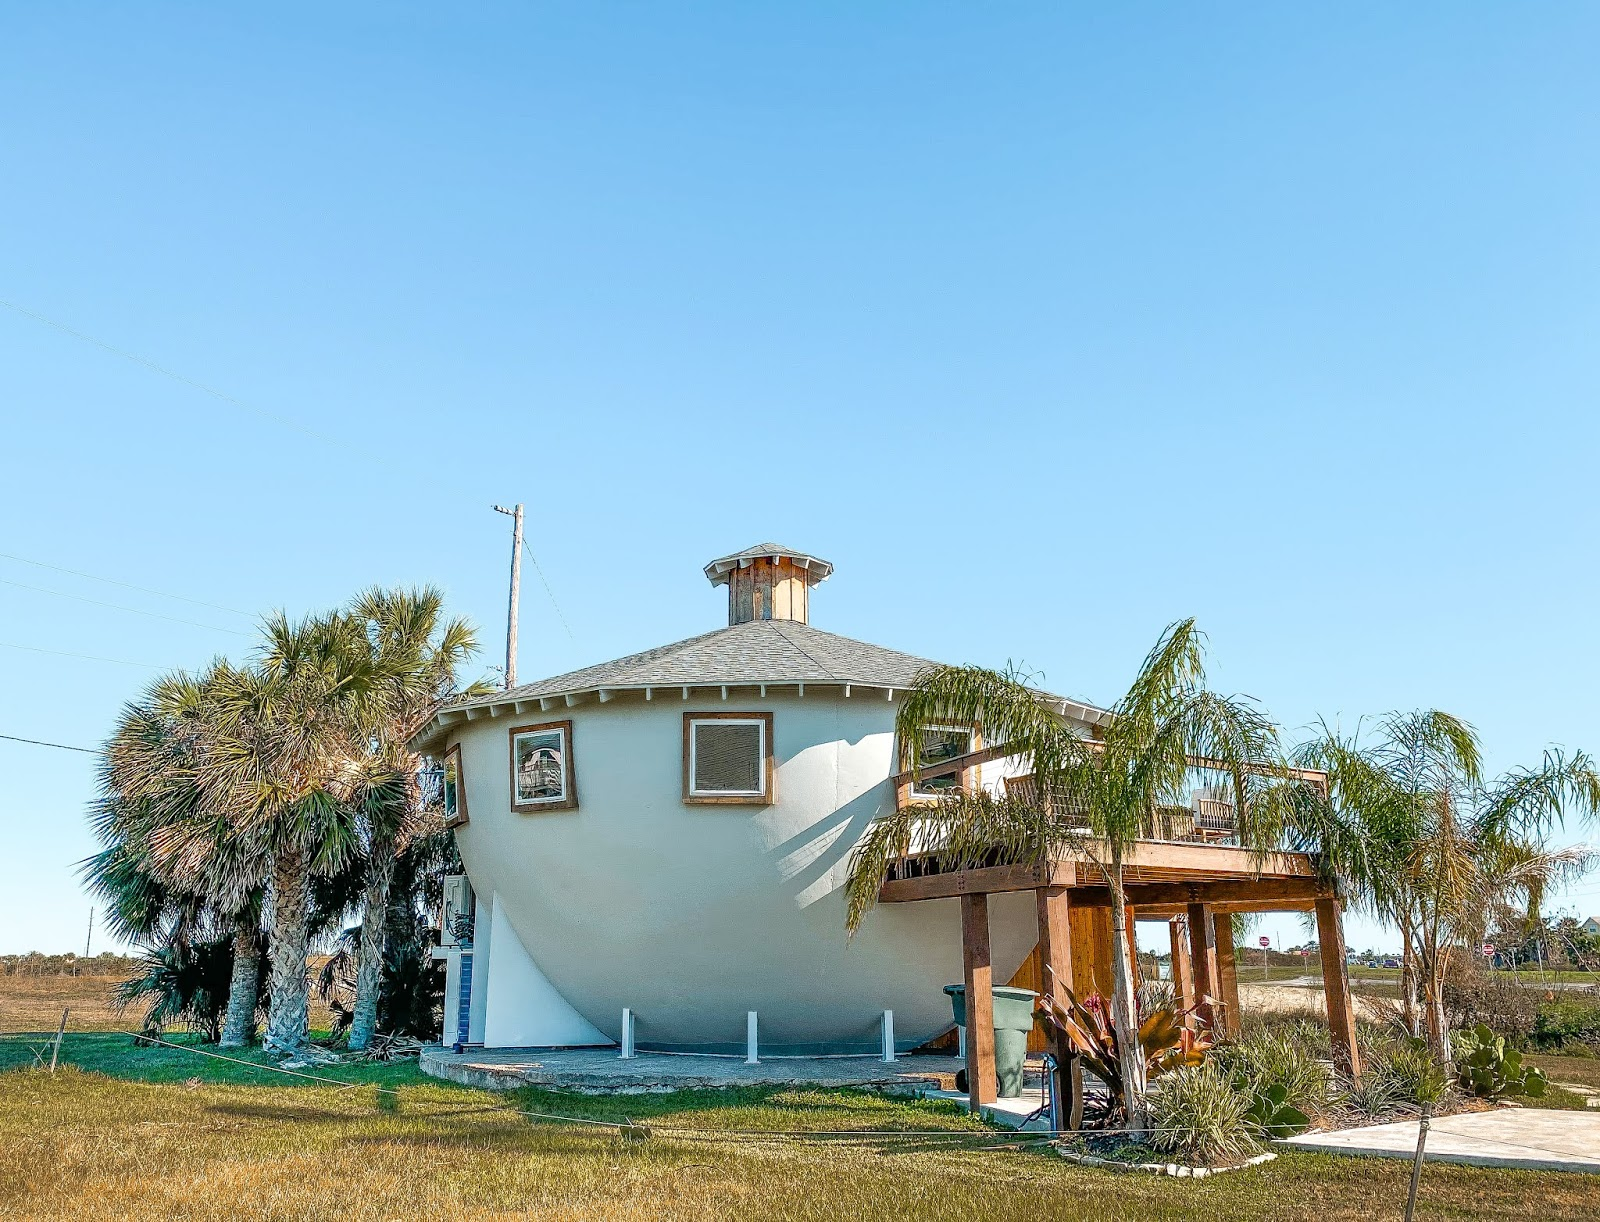 The Kettle House in Galveston